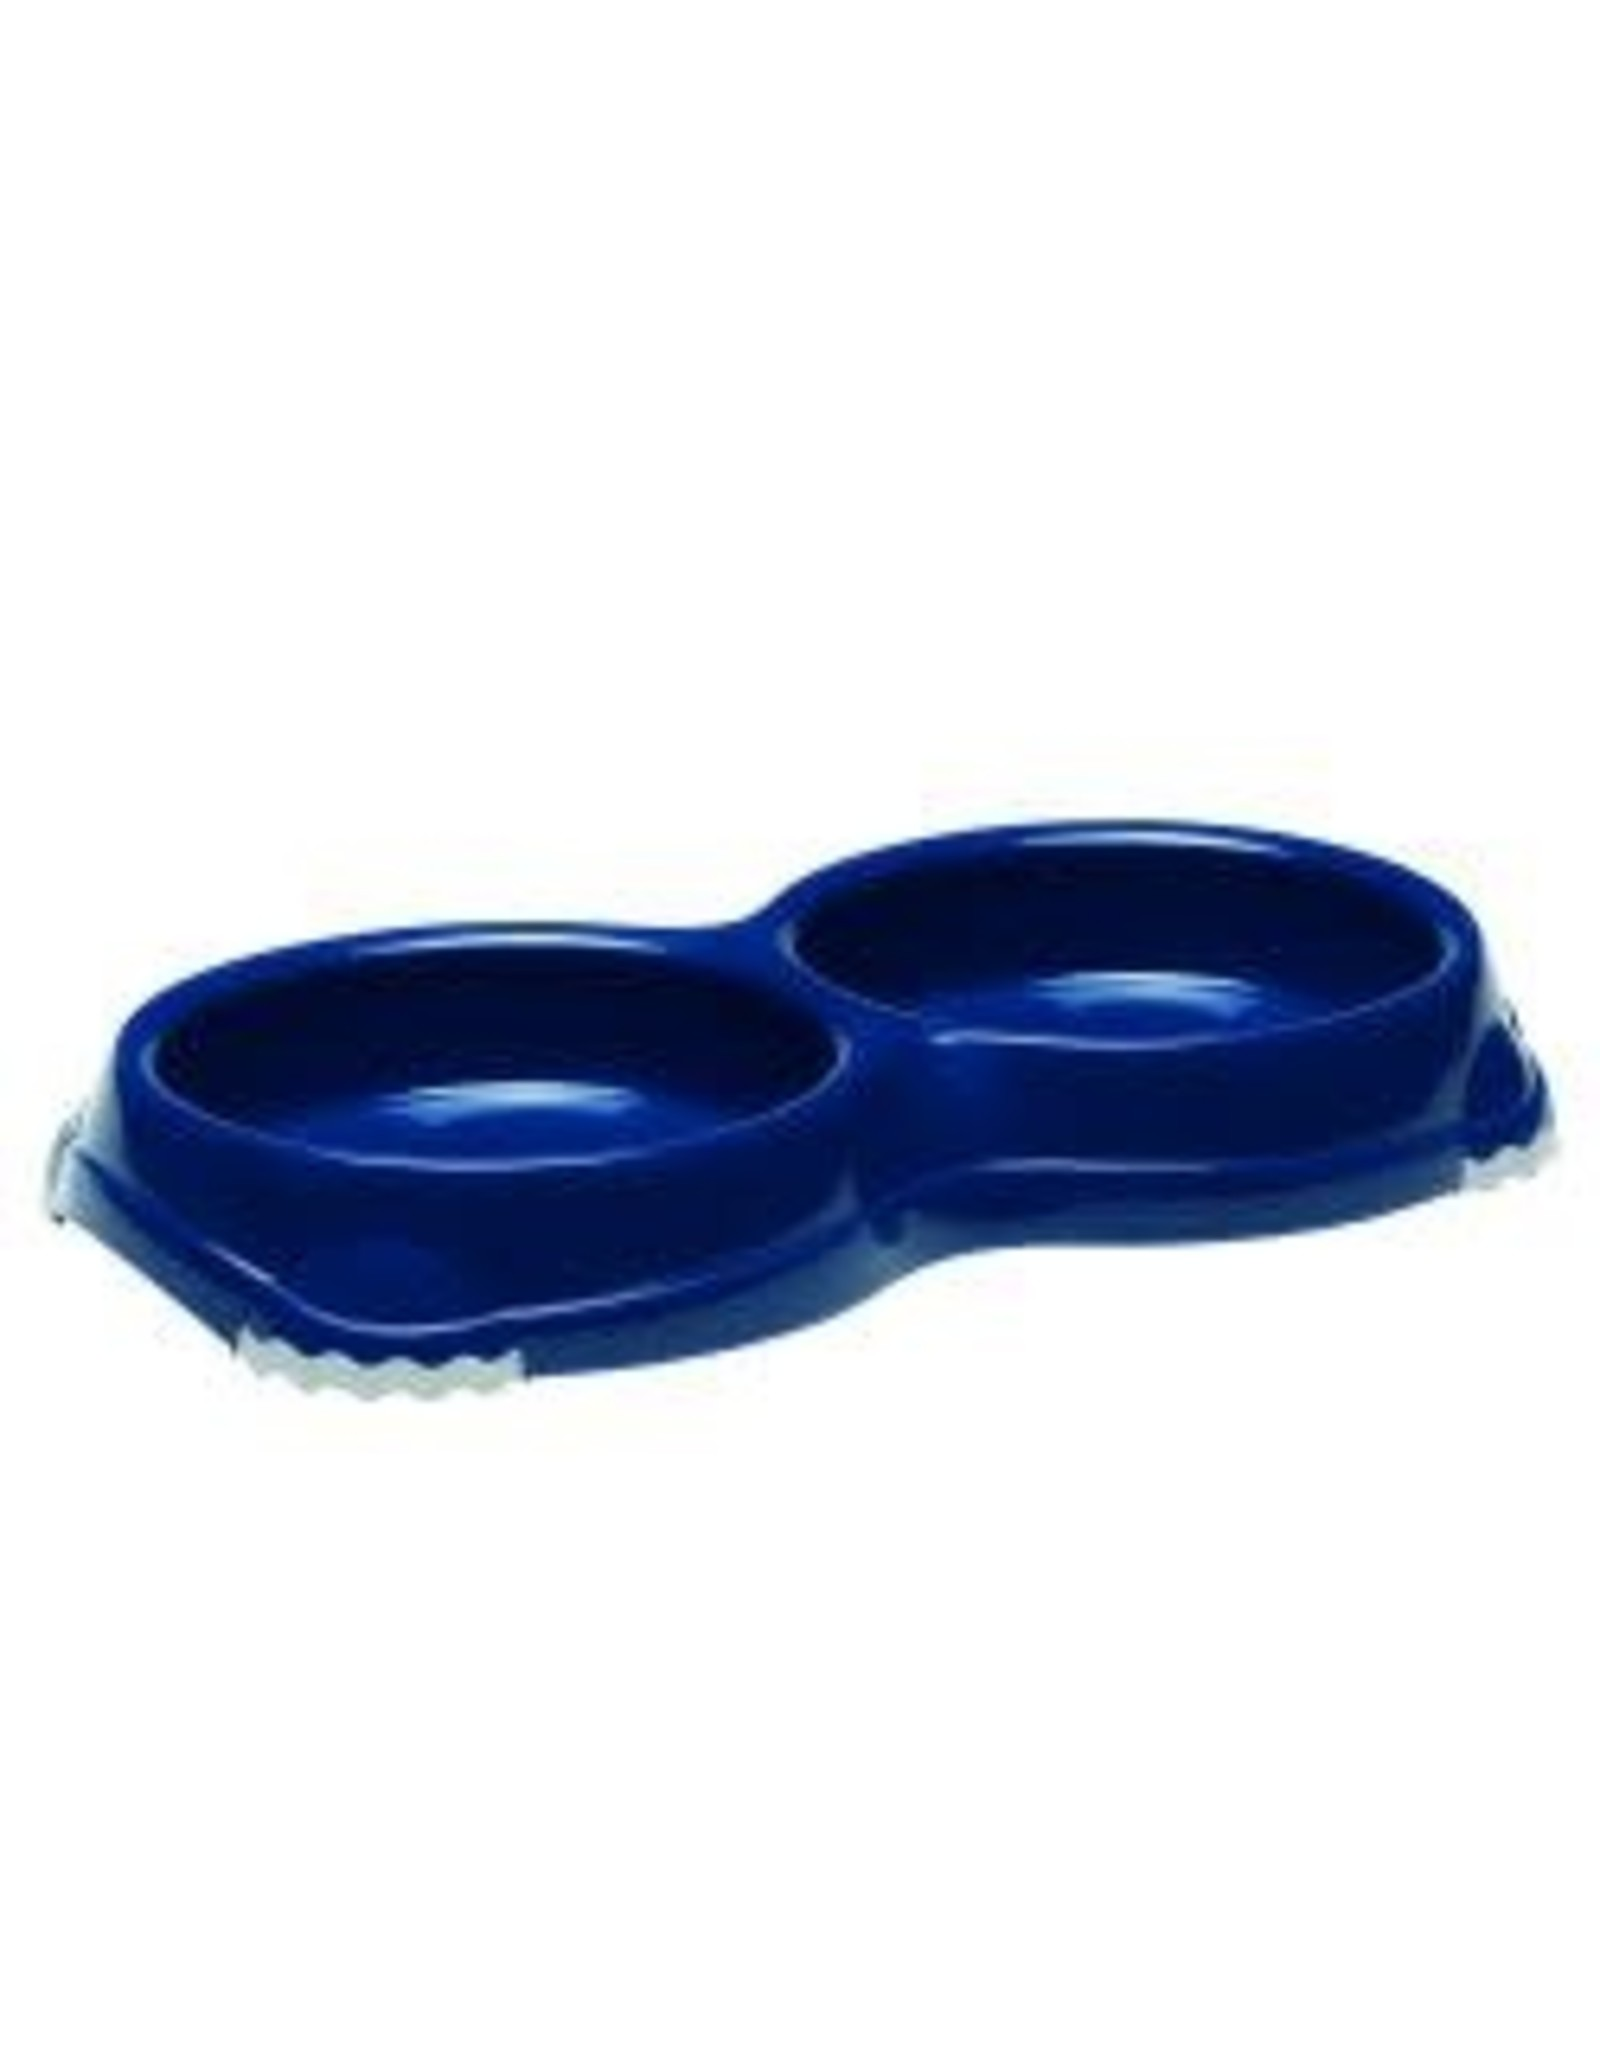 Moderna Smarty Bowl Double 2 x 200ml Blue Berry